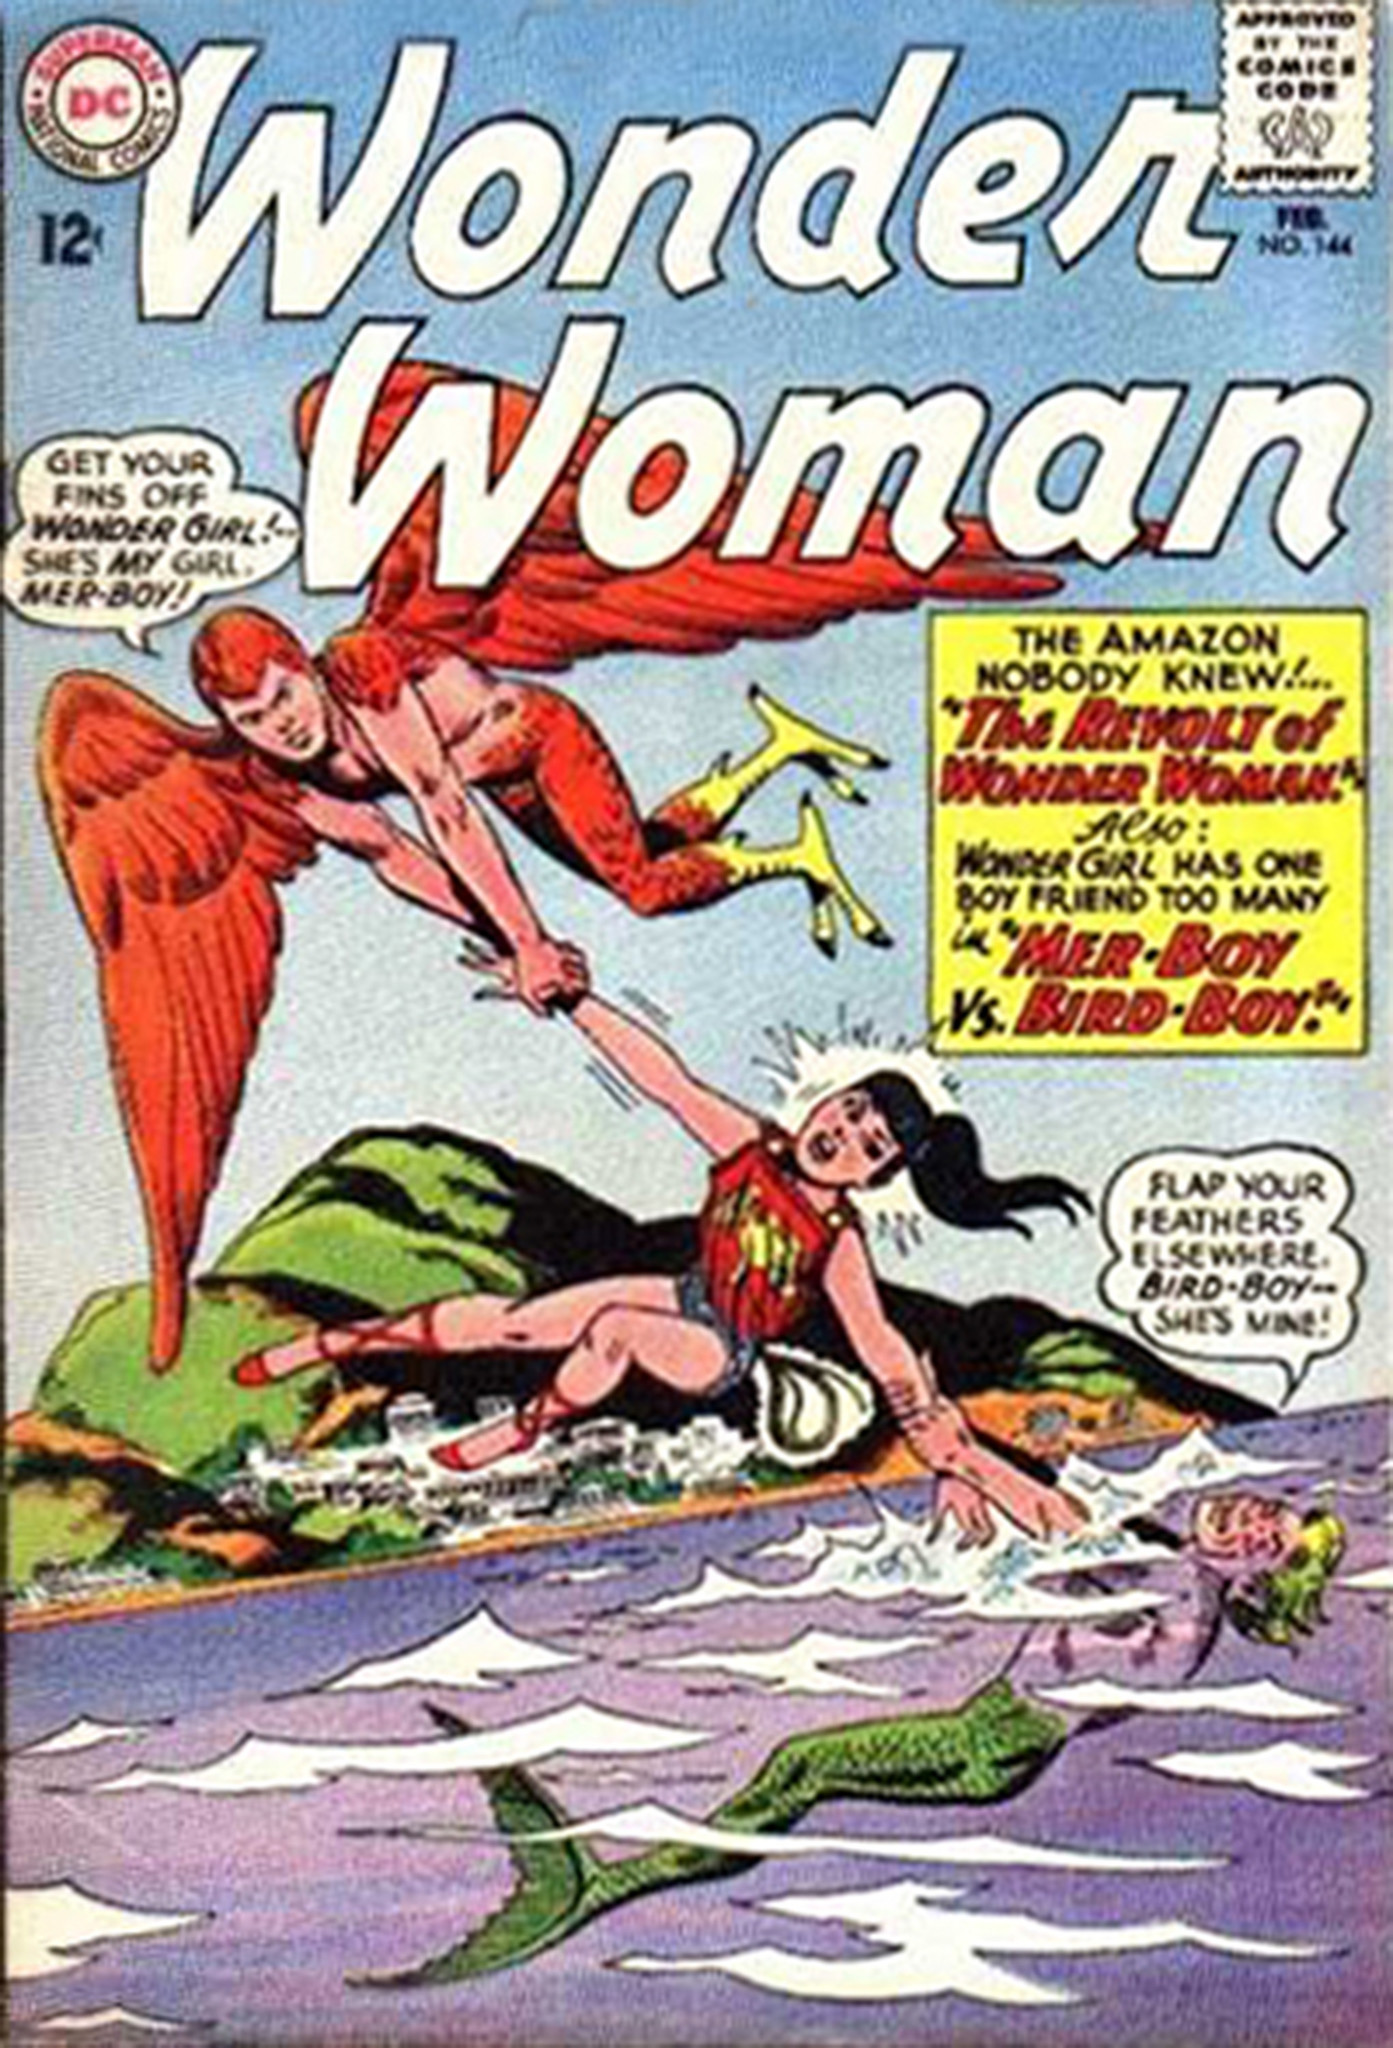 """The cover of """"Wonder Woman"""" no. 144 with the Comics Code Authority seal of approval."""